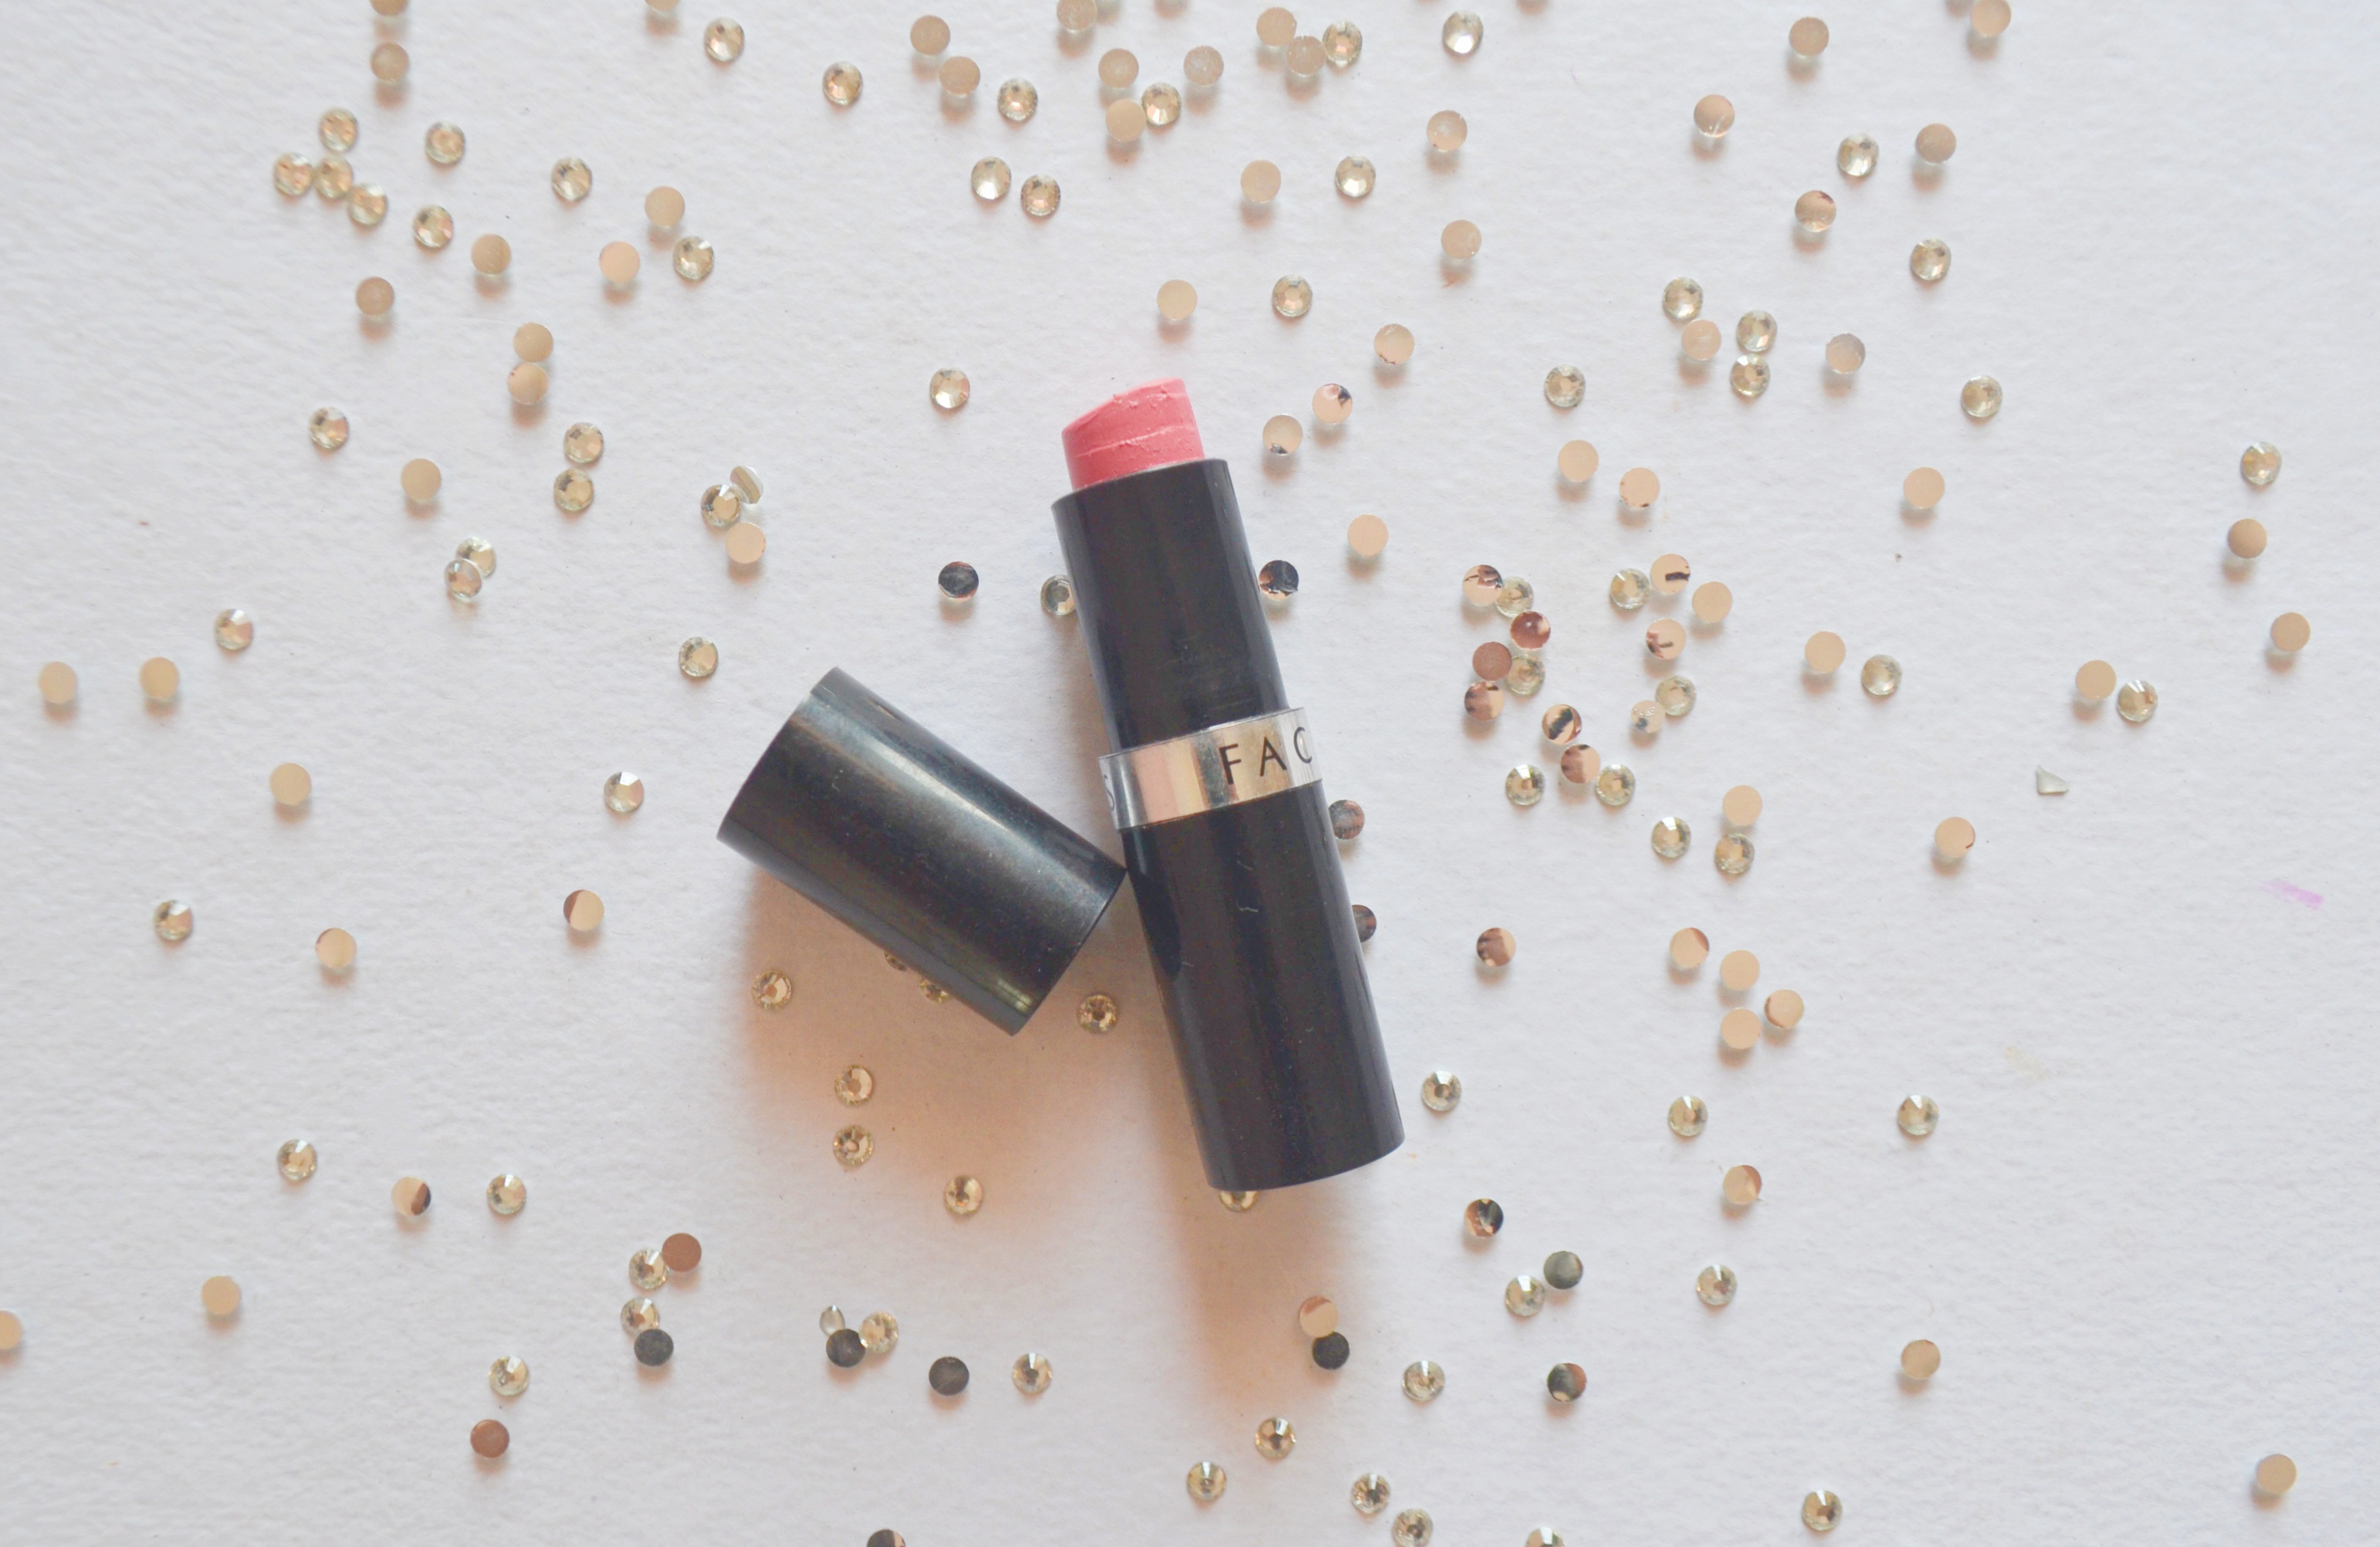 Review: Faces Candyfloss Lipstick